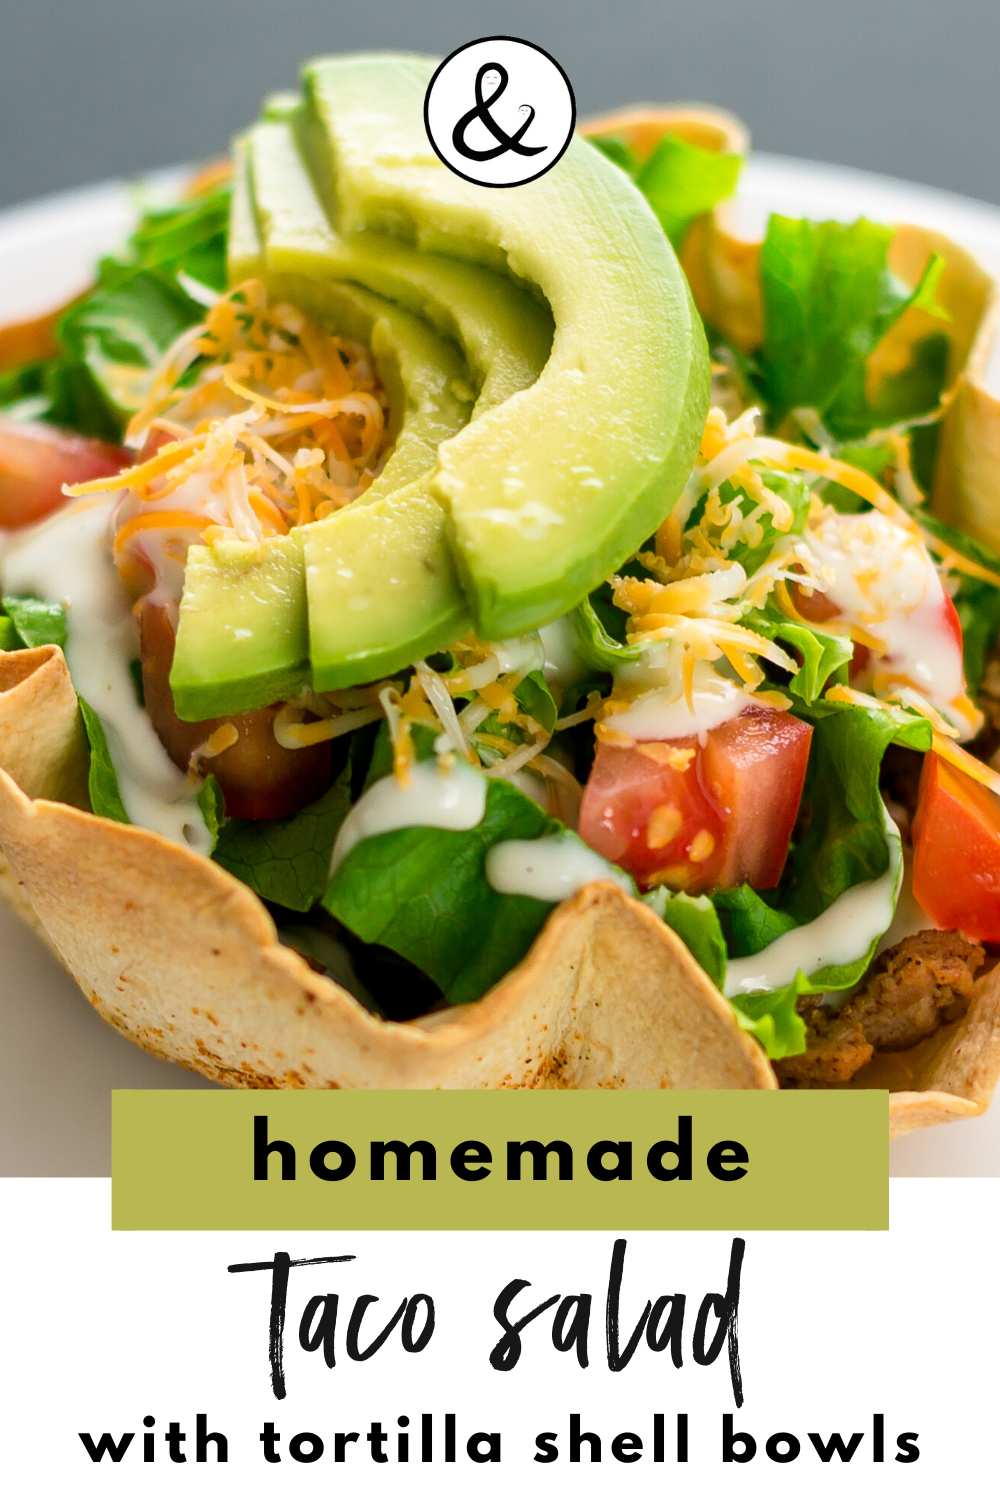 Homemade Taco Salad with Tortilla Shell Bowls